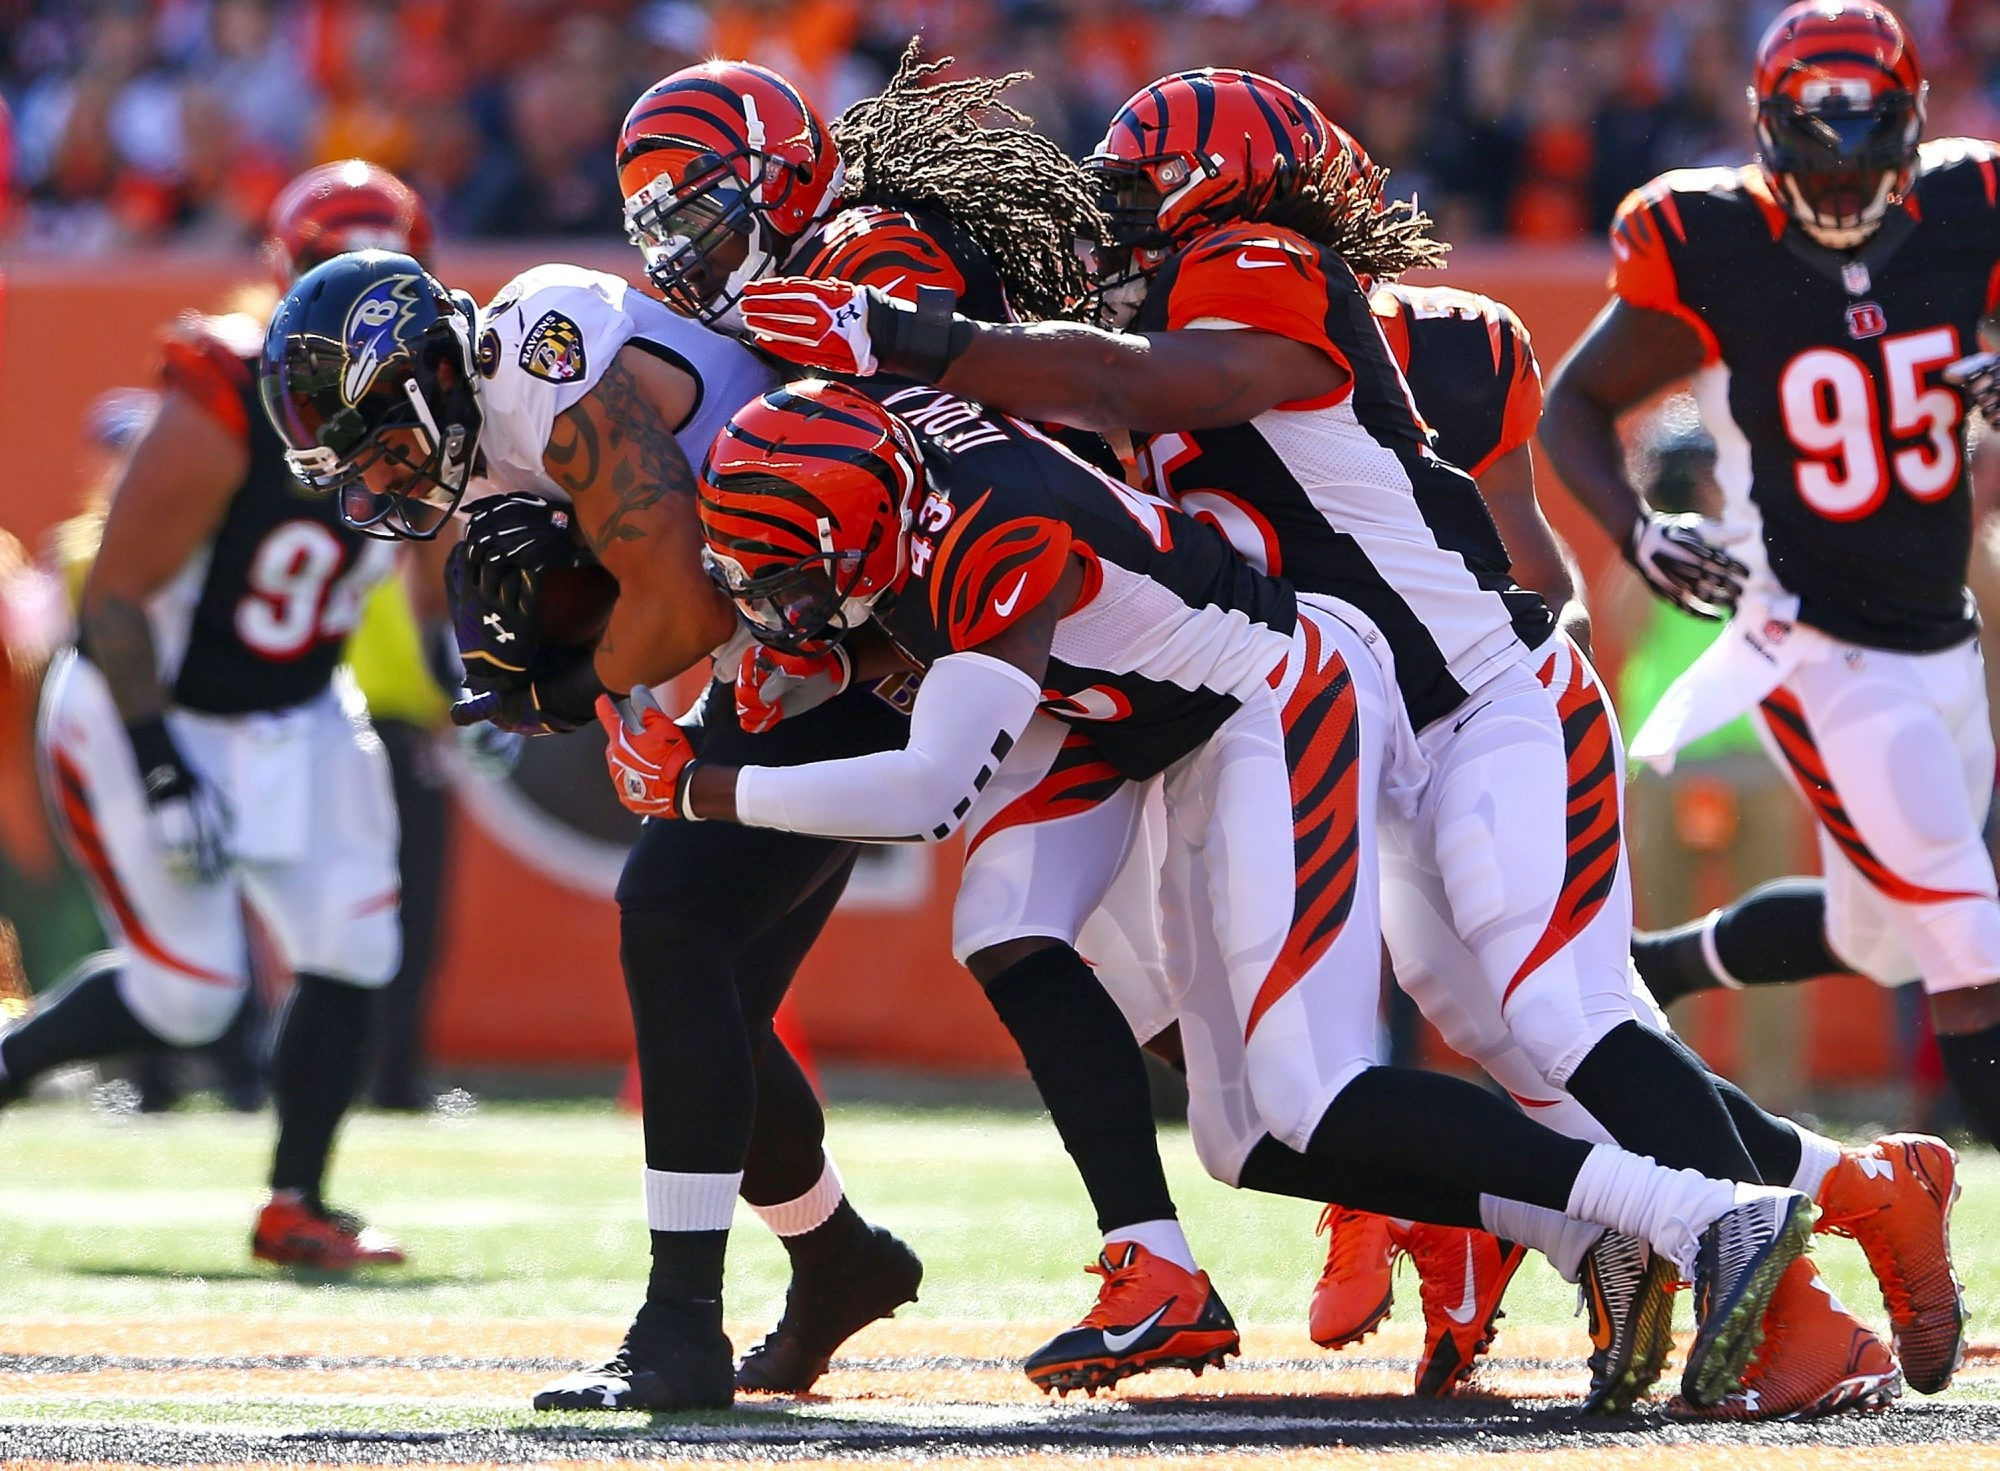 Crockett Gillmore of the Ravens is gang tackled by Bengals defenders in their meeting last October. Cincinnati swept the season series in 2014.